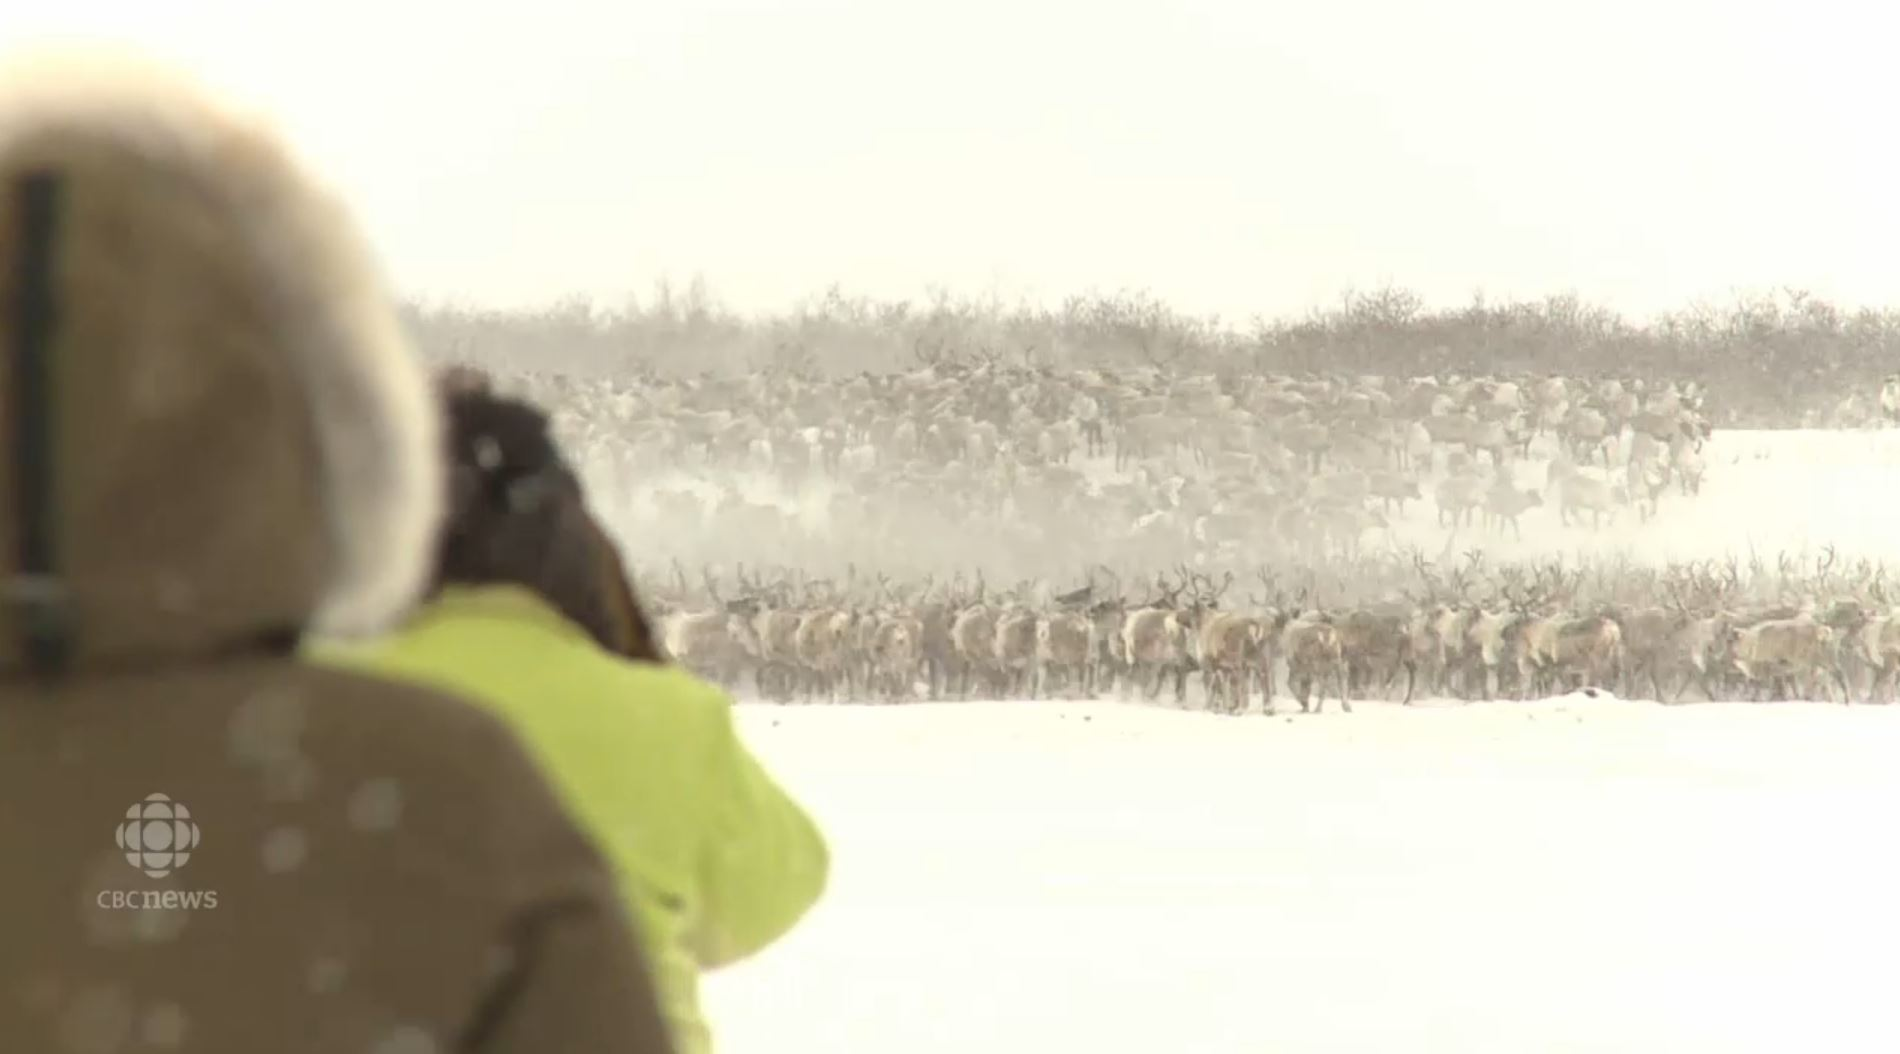 200 Spectators Take in 81st Annual Inuvik Reindeer Crossing